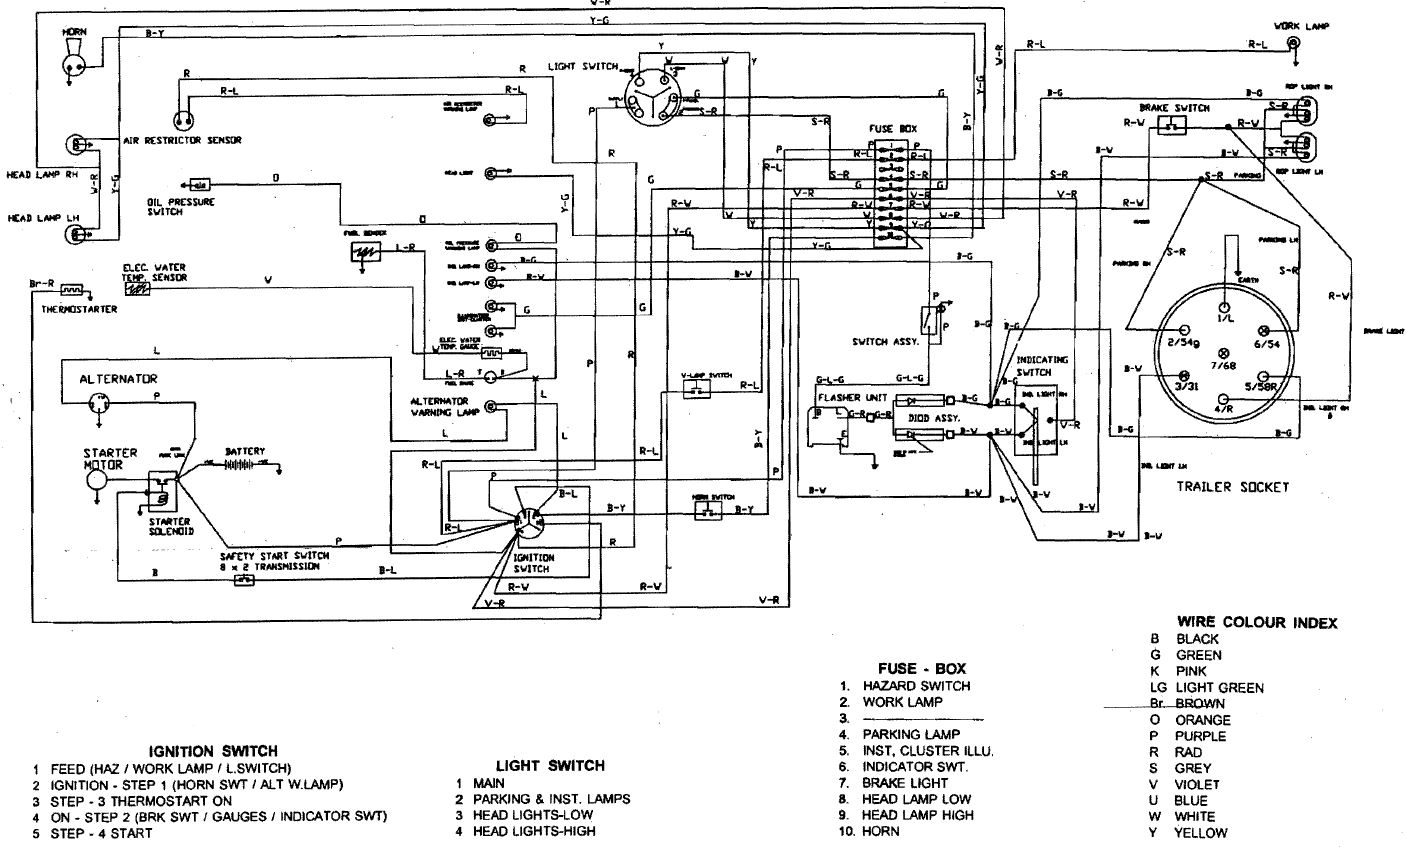 20158463319_b82d524c3d_o ignition switch wiring diagram yanmar l100 generator wiring diagram at mifinder.co